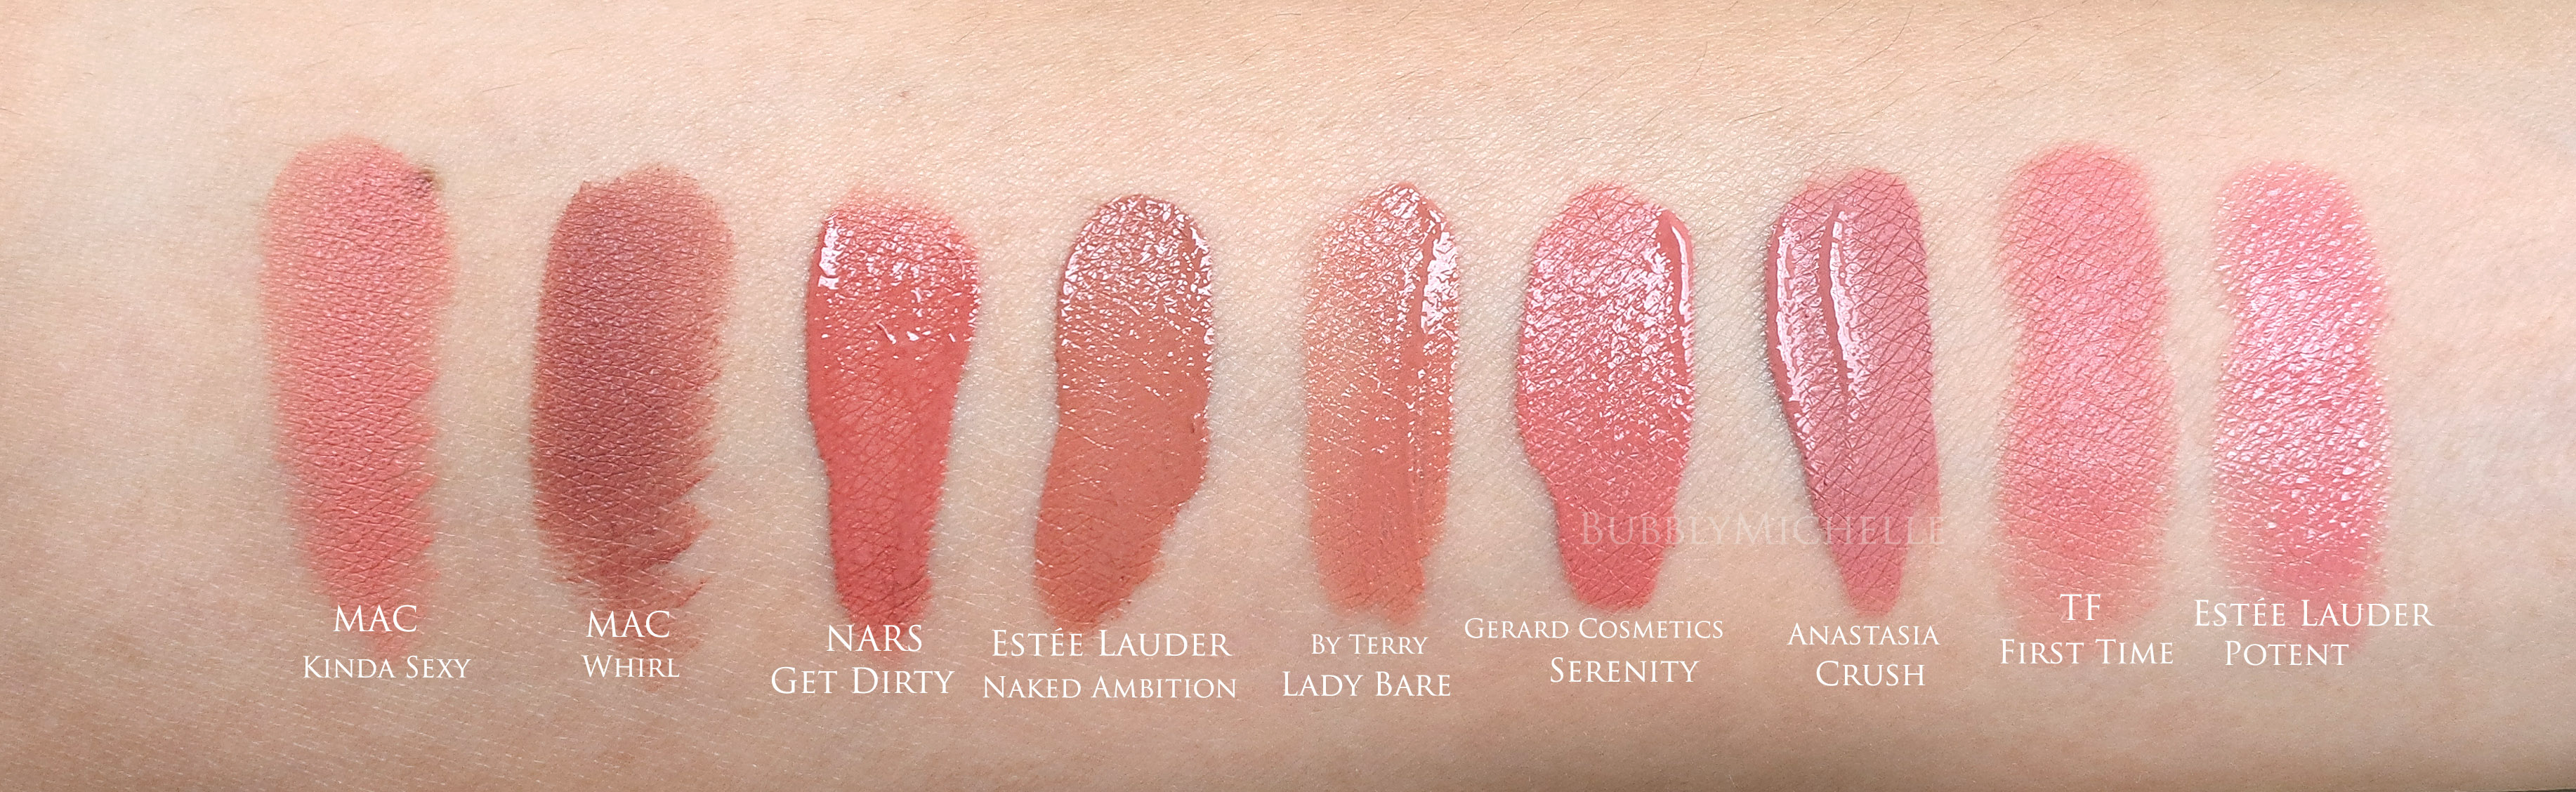 Nars Få Dirty Lip Cover Summer 2016 Review, Photos-3127